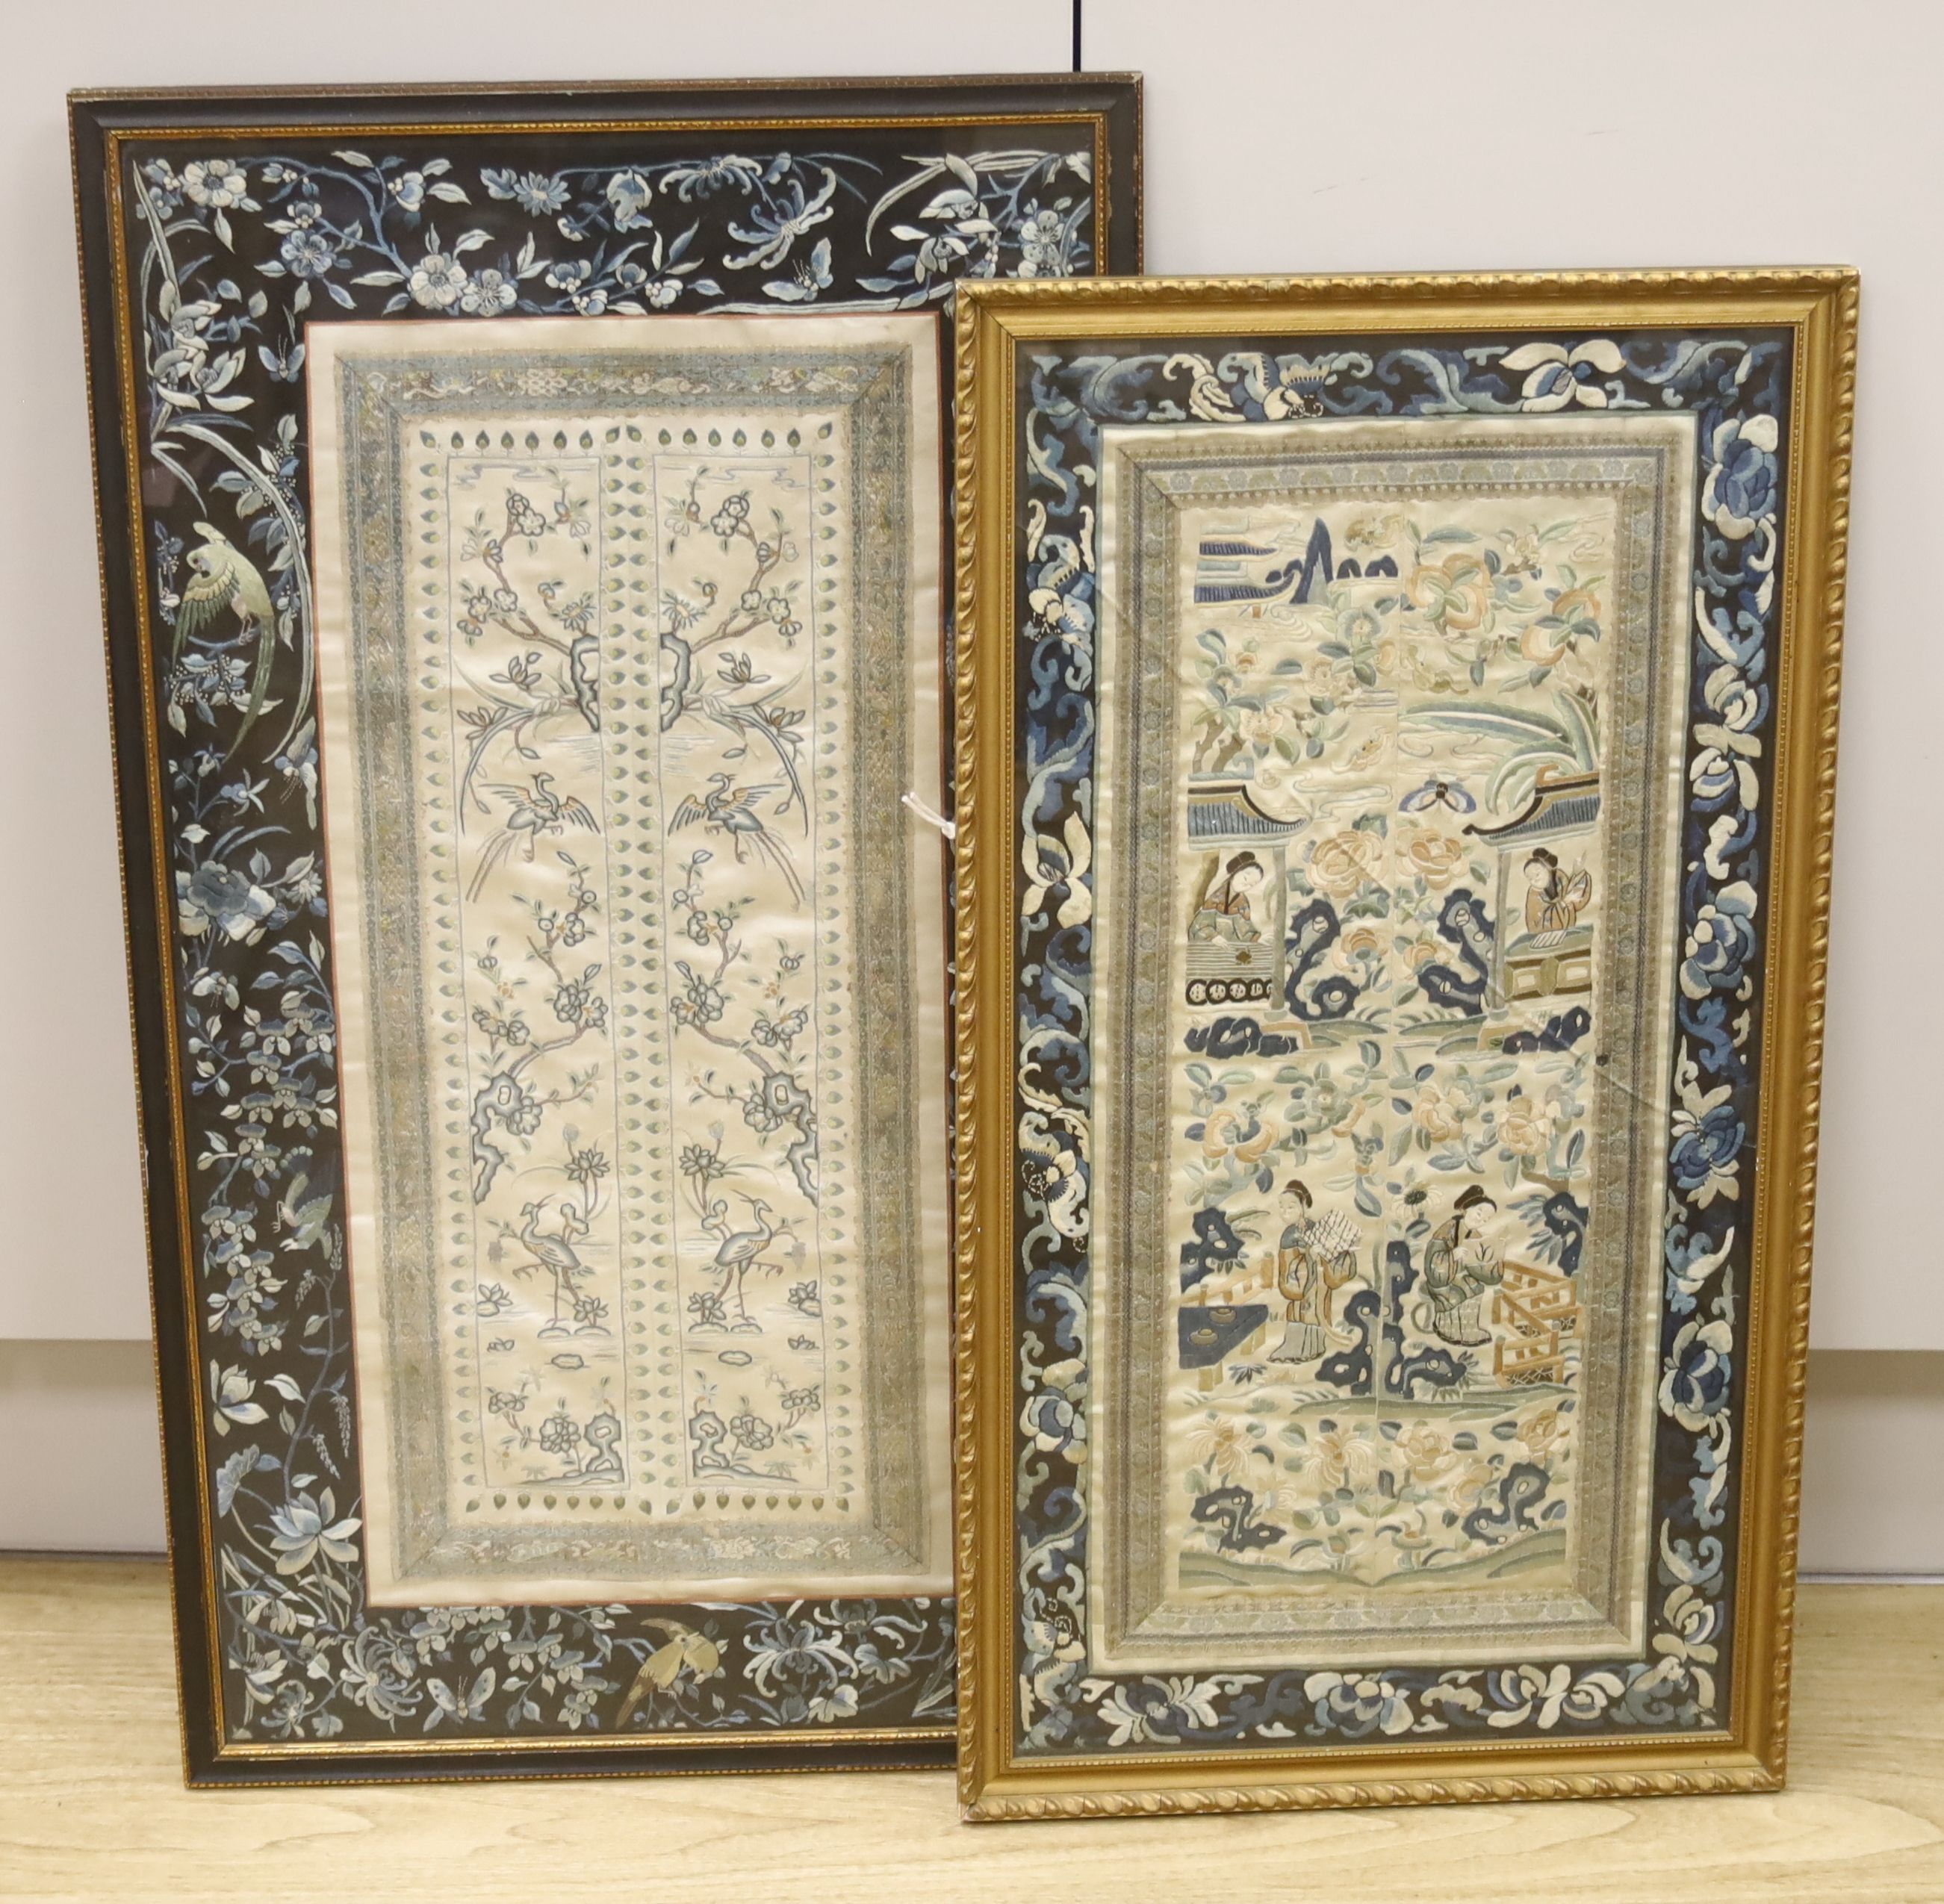 Two framed Chinese late Qing embroidered silk panels71 x 39cm & 62 x 32cm